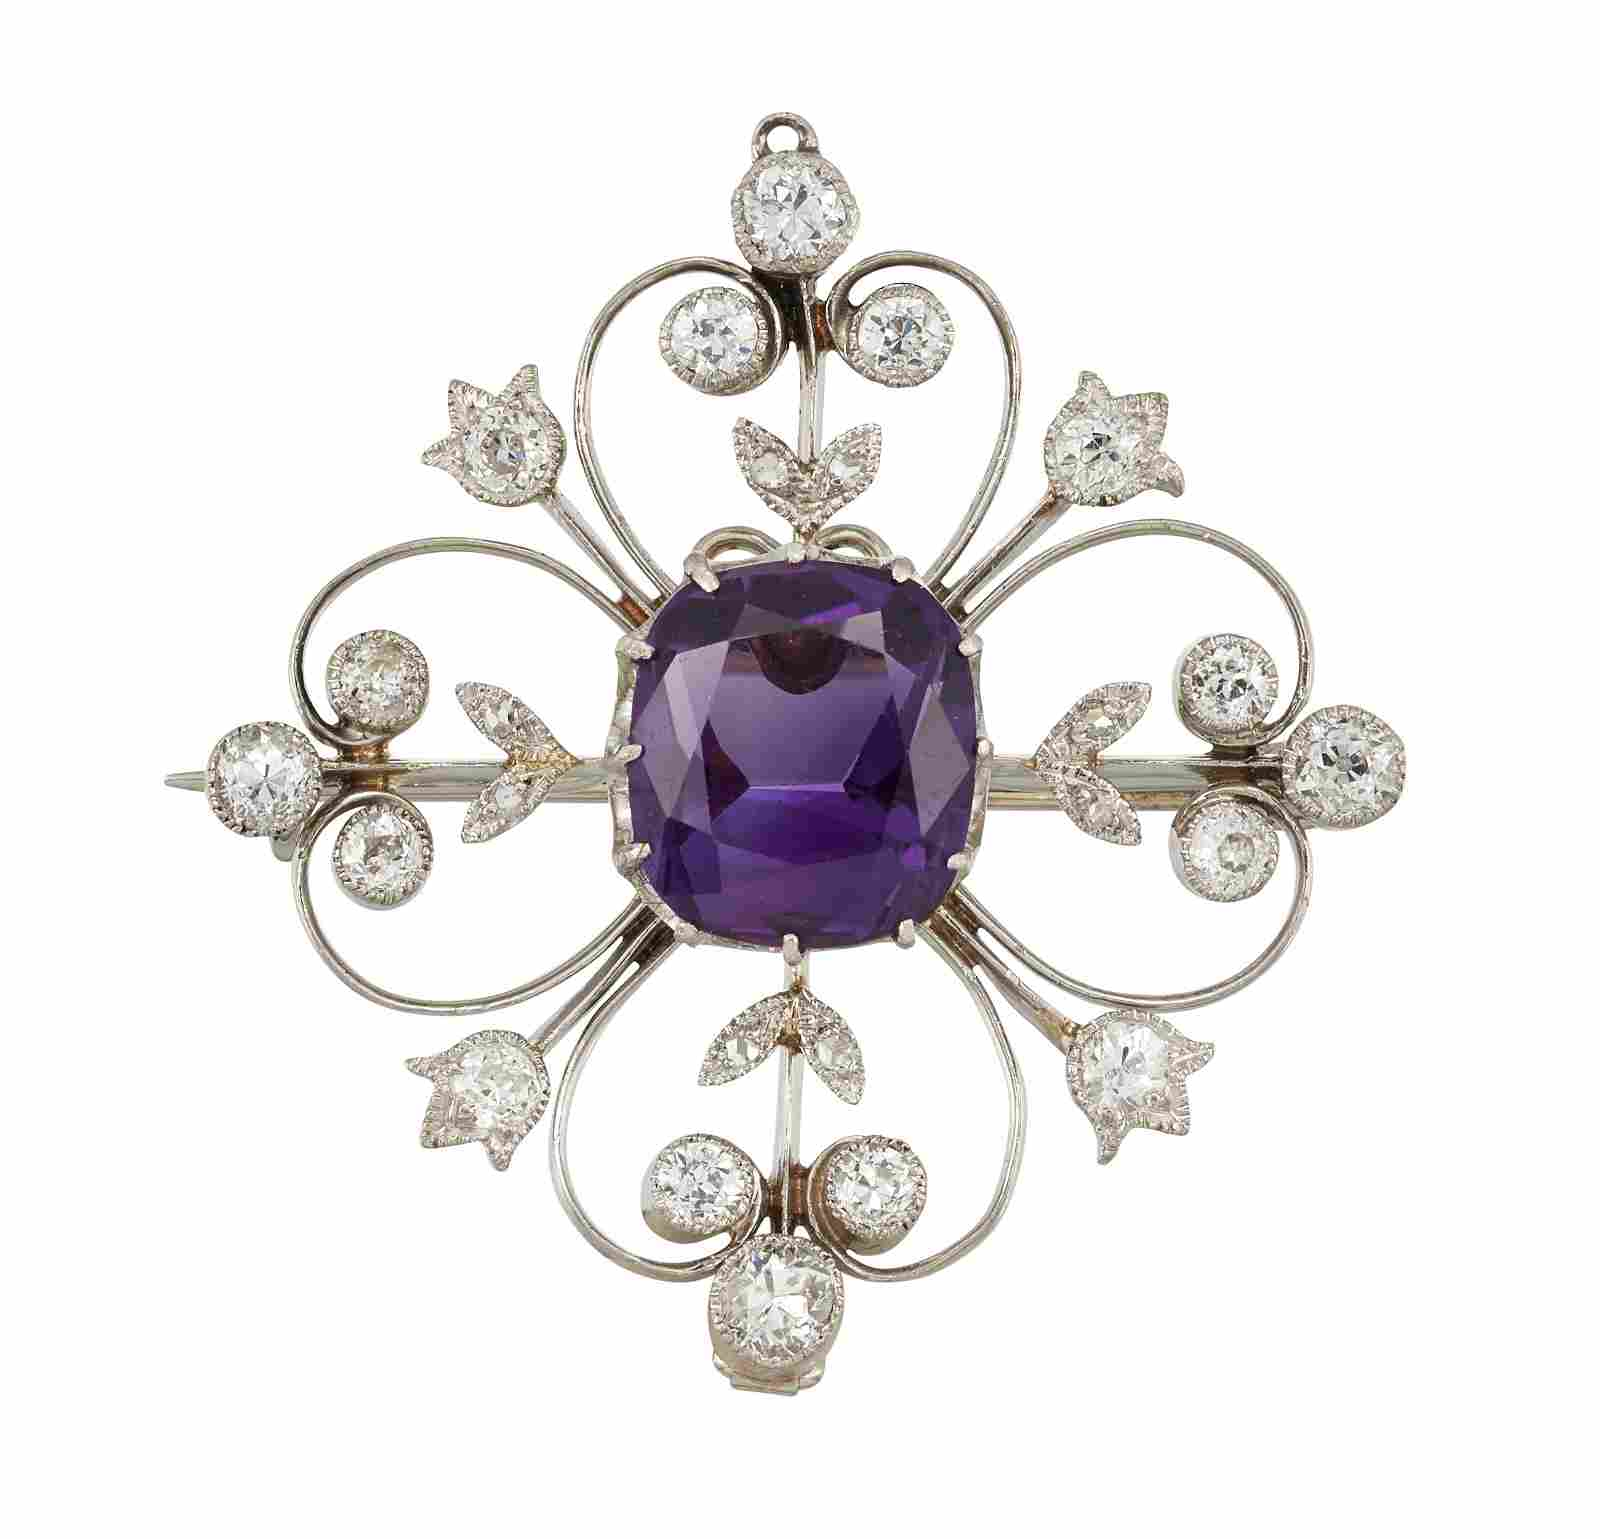 AN AMETHYST AND DIAMOND BROOCH/PENDANT, the cushion cut